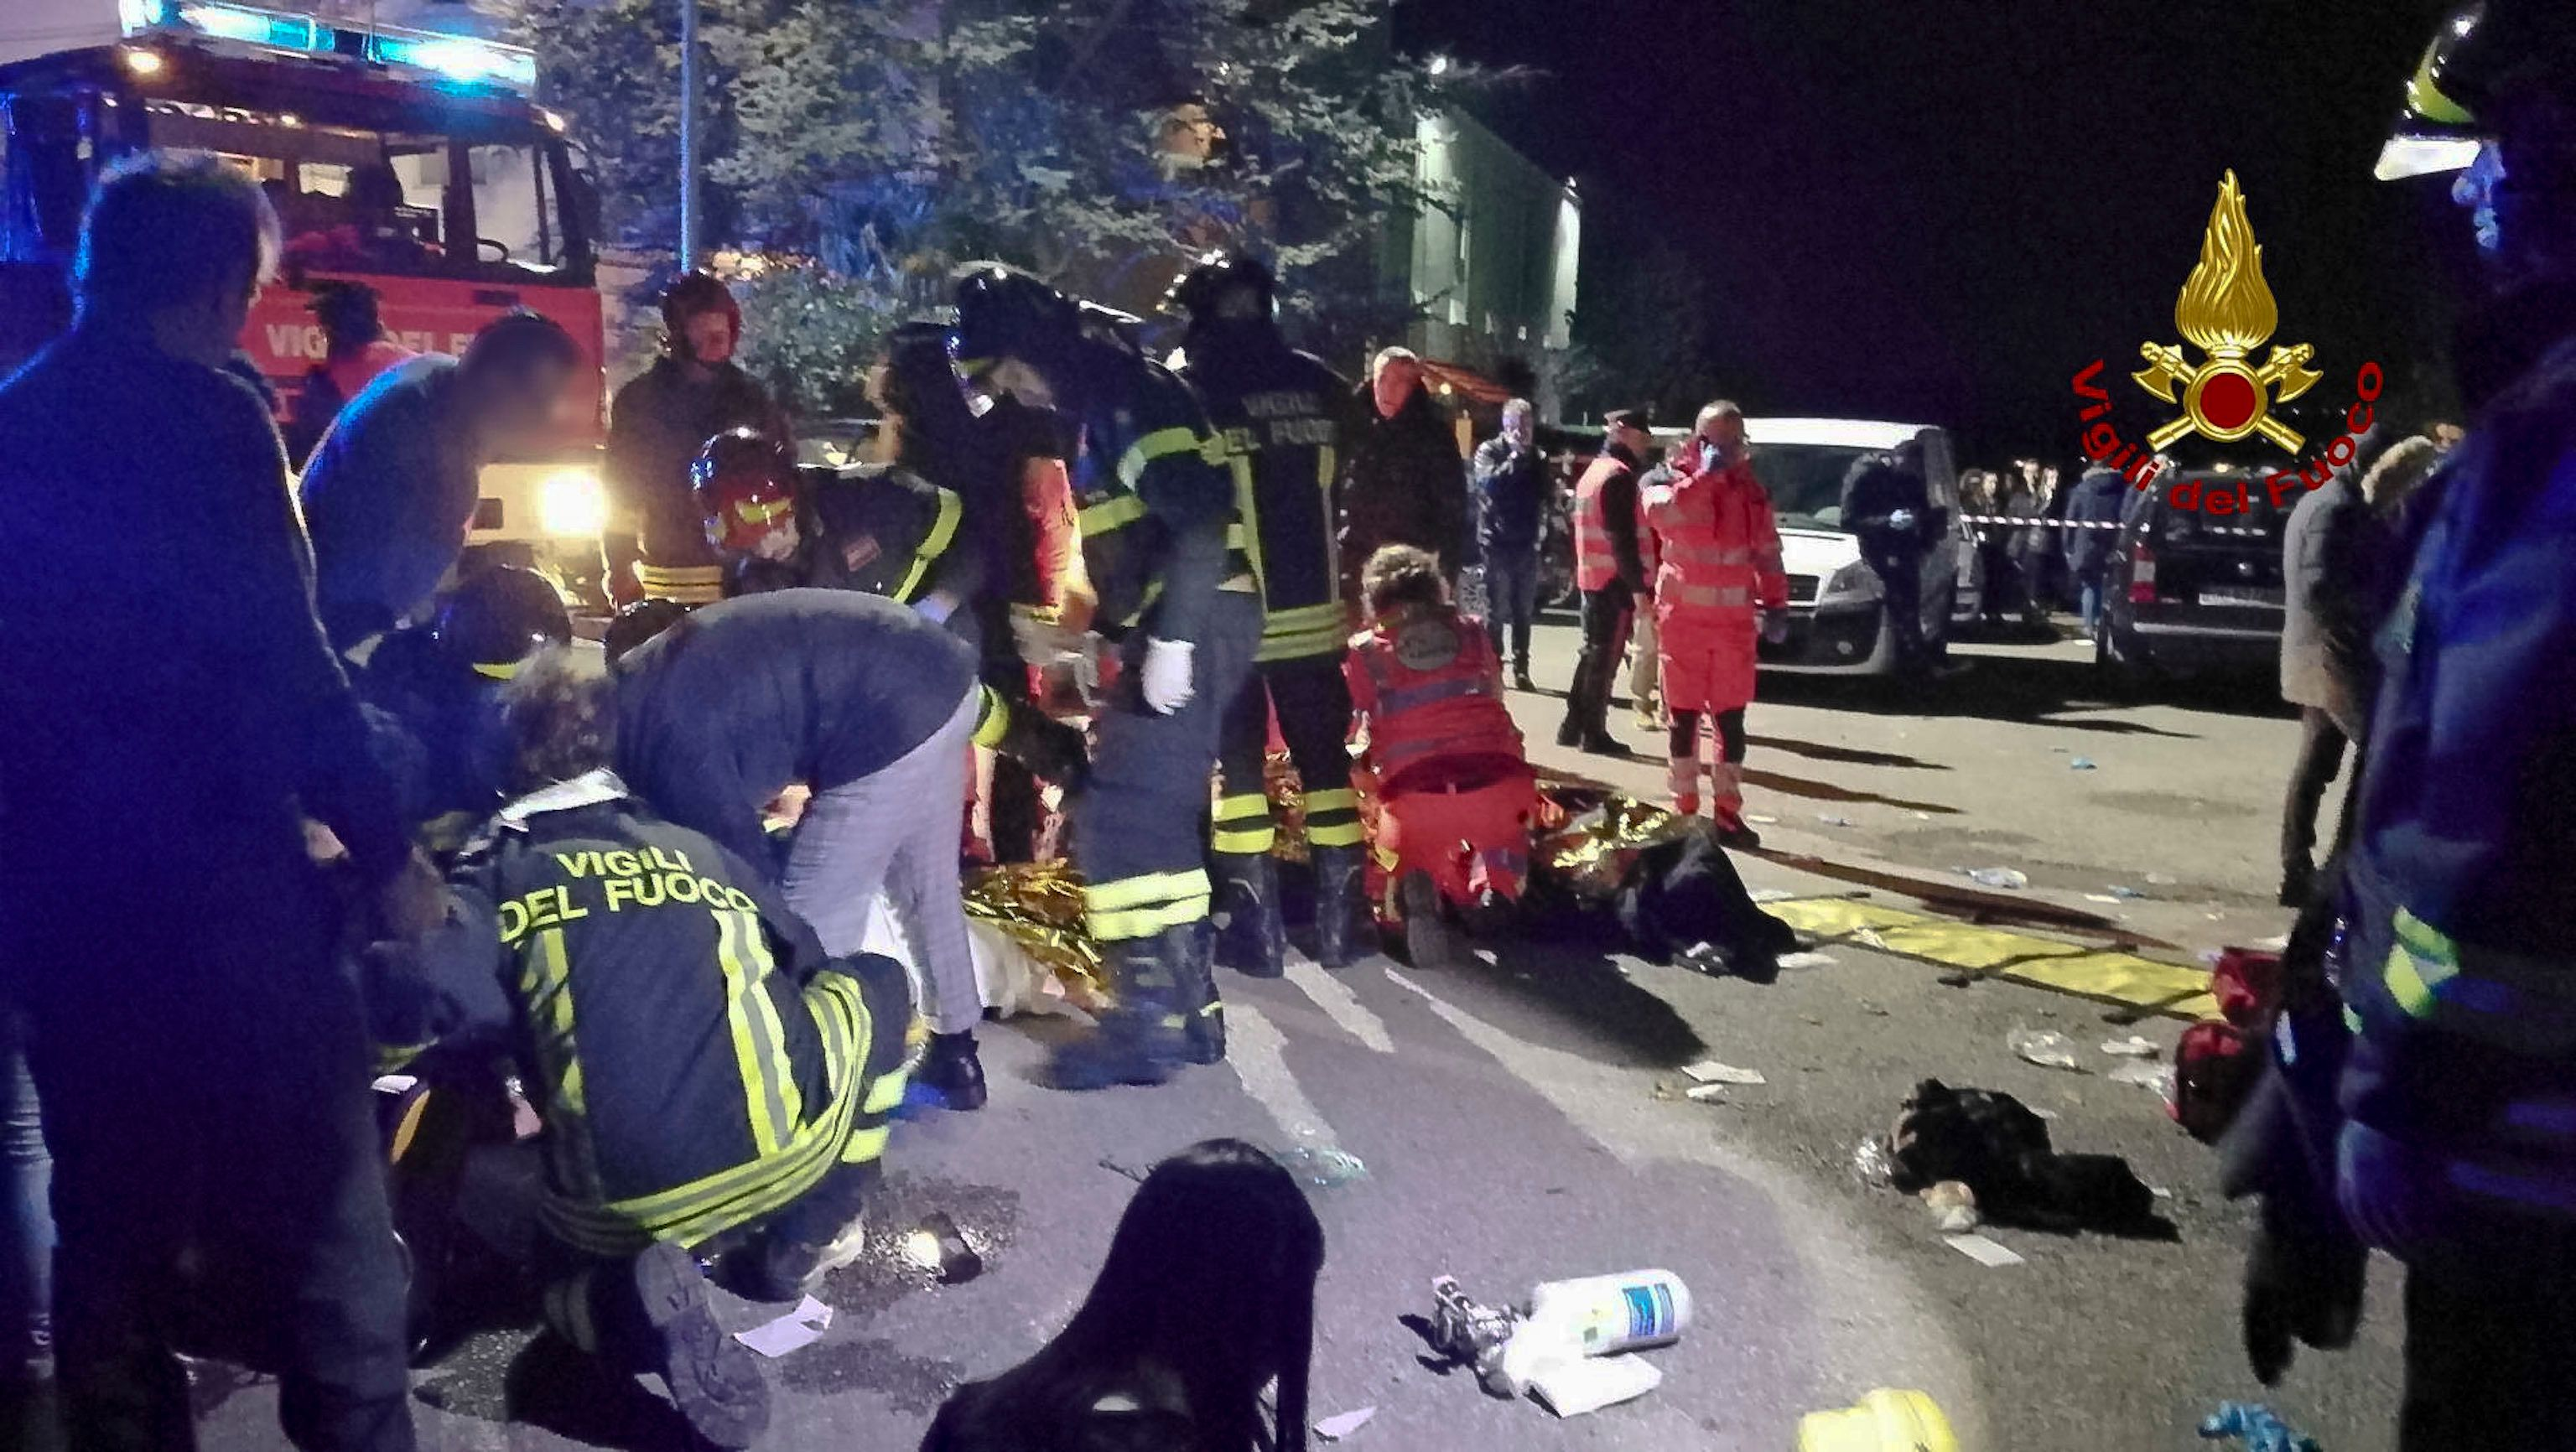 In this frame taken from video rescuers assist injured people outside a nightclub in Corinaldo, central Italy, early Saturday, Dec. 8, 2018. At least Six people, all but one of them minors, were killed and about 35 others injured in a stampede of panicked concertgoers early Saturday at a disco in a small town on Italy's central Adriatic coast. (Vigili del Fuoco via AP)